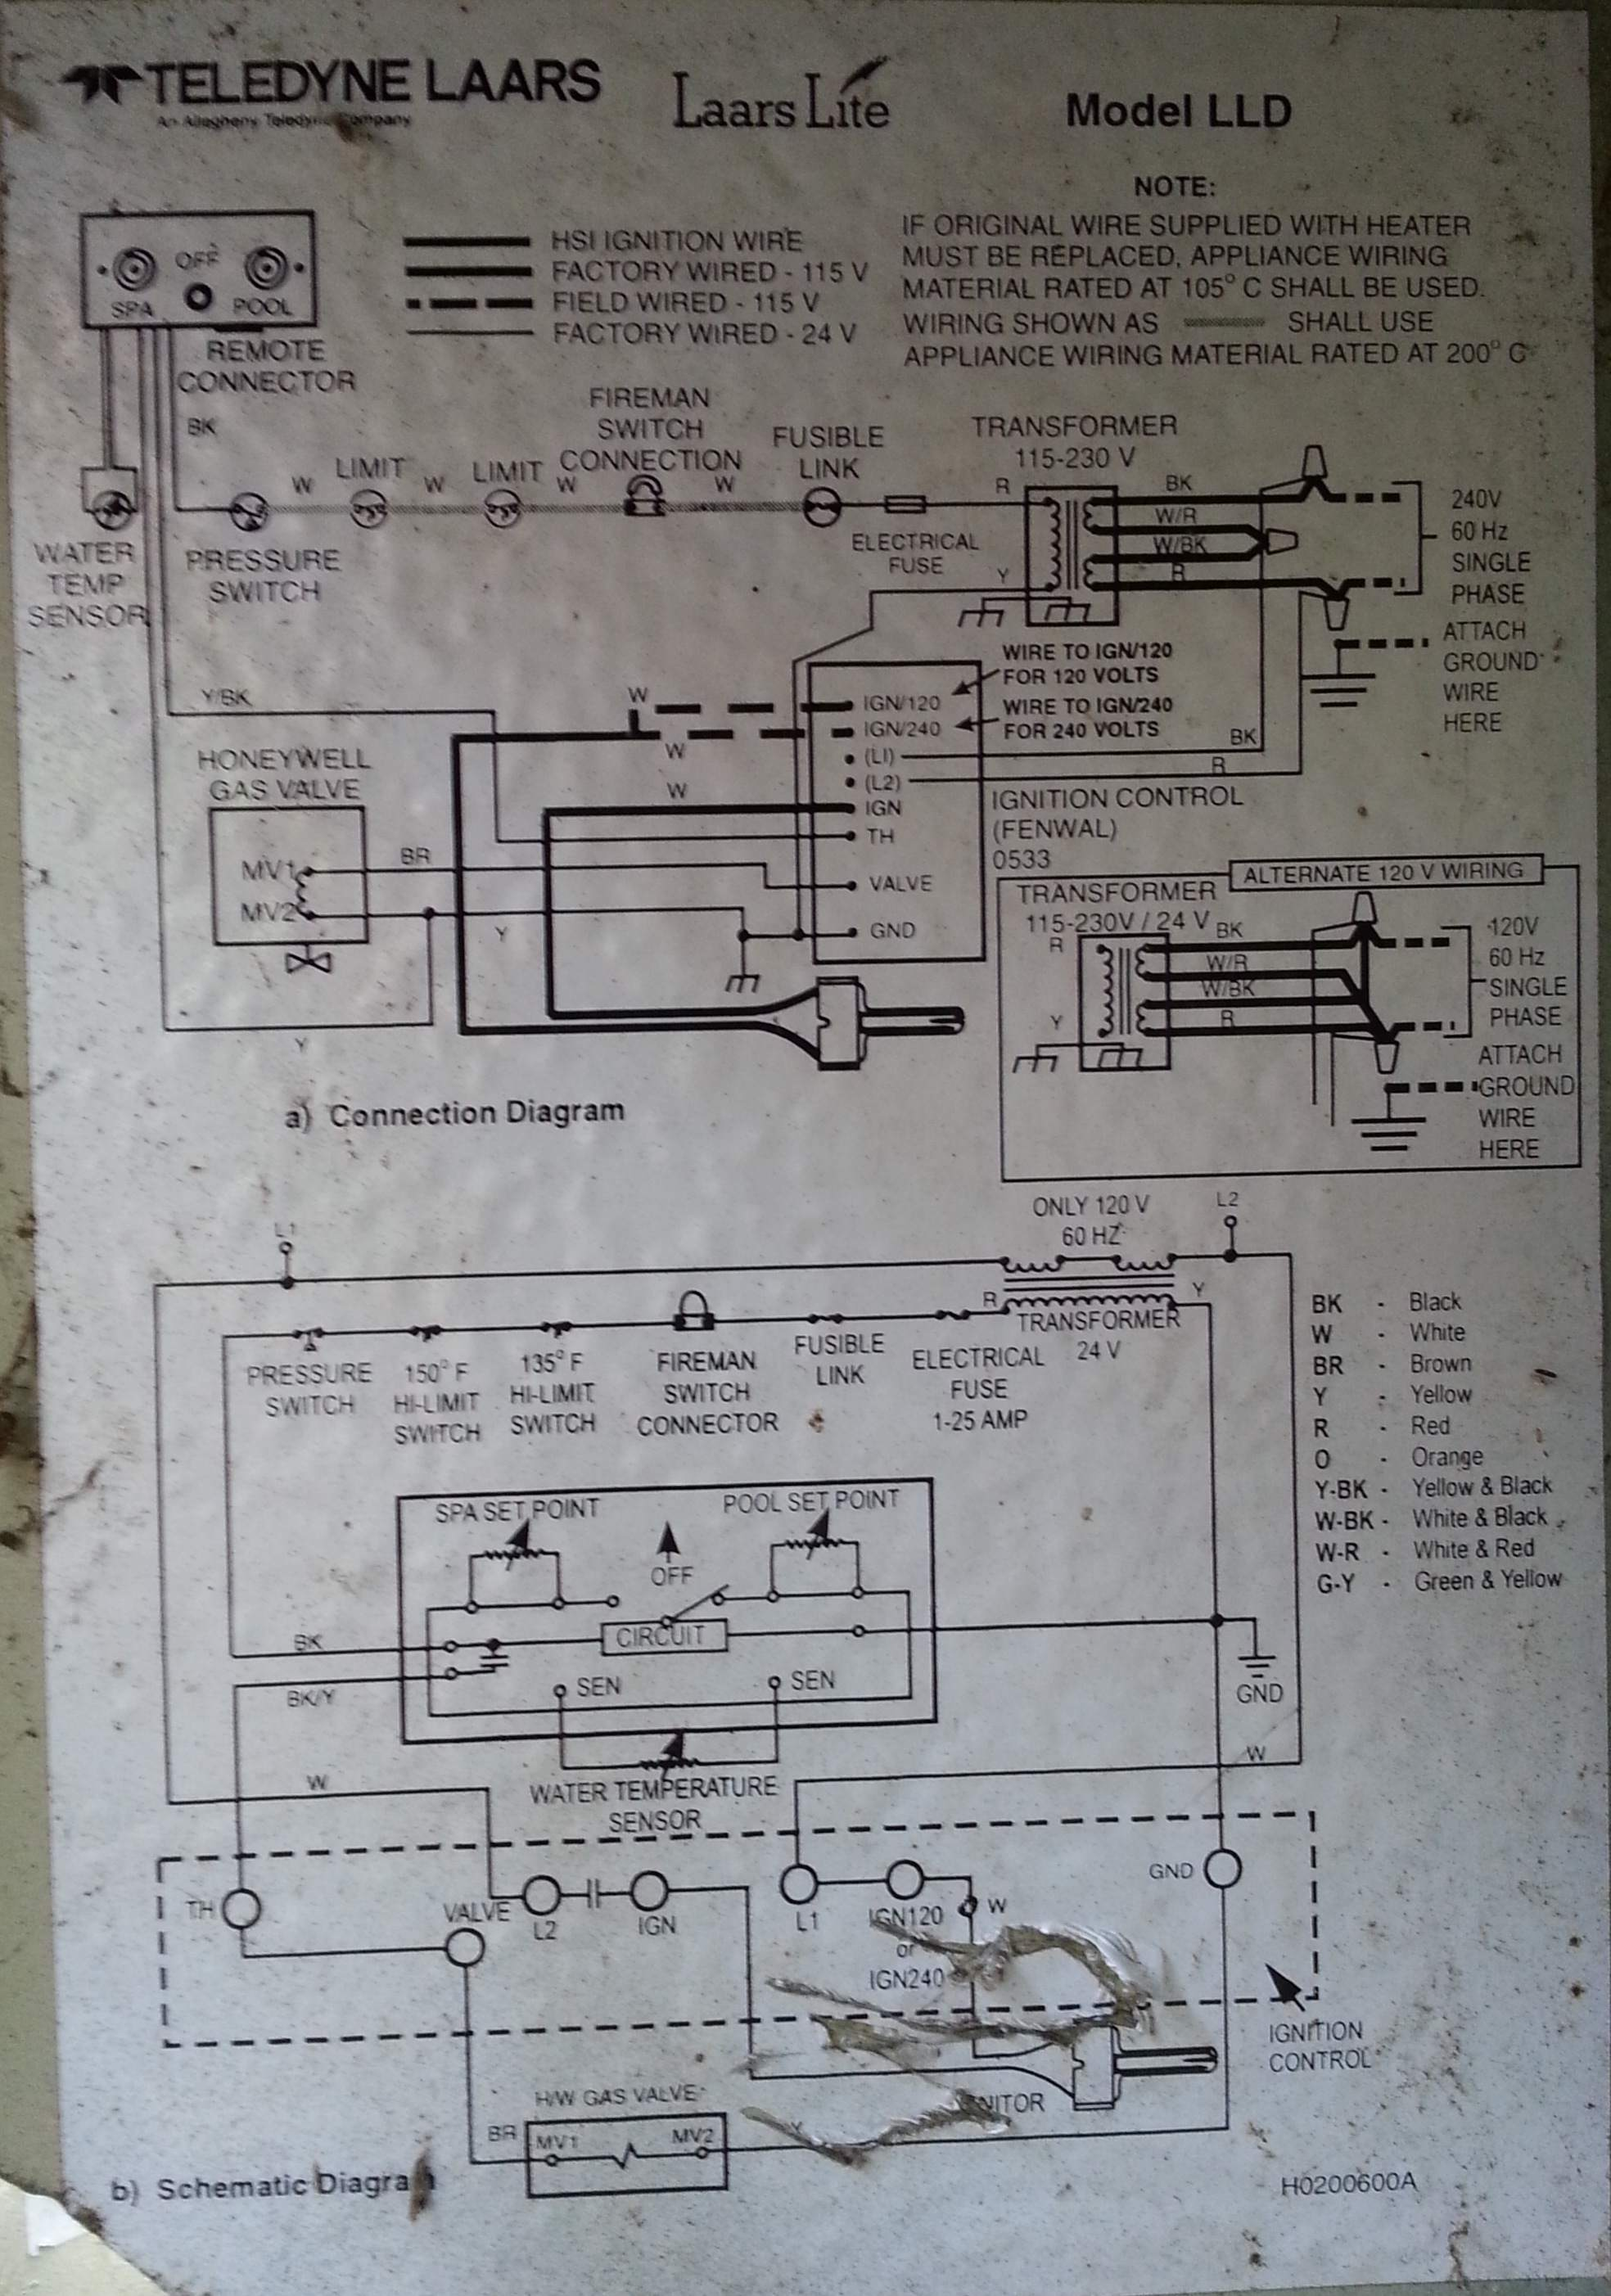 Laars Boiler Wiring Diagrams | Online Wiring Diagram on gsxr 1000 motor, gsxr 1000 headlight, gsxr 1000 parts, gsxr 1000 frame, gsxr 1000 clutch, tl 1000 r wiring diagram, gsxr 1000 ecu, ninja 1000 wiring diagram, gsxr 1000 automatic transmission, gsxr 1000 engine diagram, gsxr 1100 wiring diagram, gsxr 1000 owner manual, gsxr 1000 exhaust, gsxr 1000 battery, gsxr 600 wiring diagram, gsxr 1000 transformer, fzr 1000 wiring diagram, gsxr 1000 piston, gsxr 1000 wheels, gsxr 1000 oil pump,